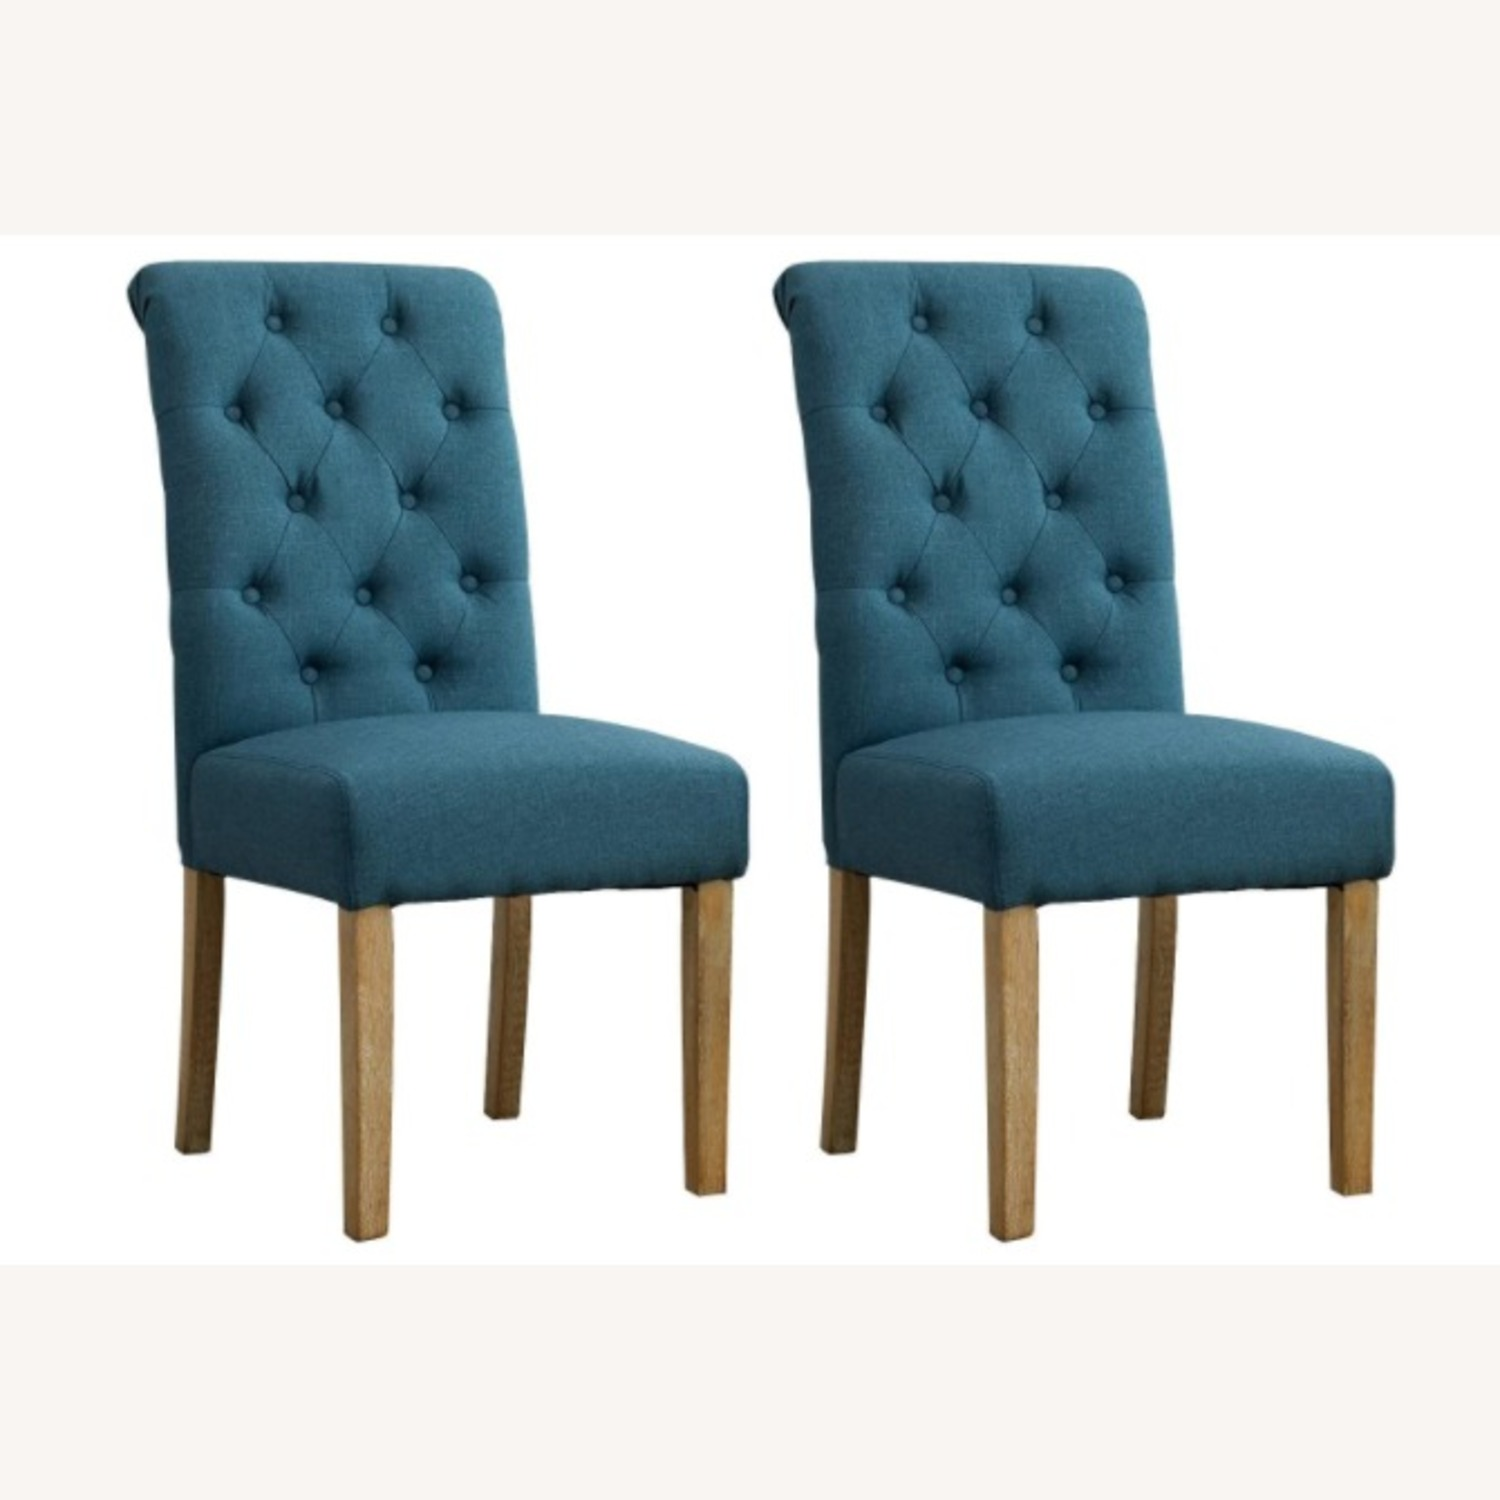 Round Hill Furniture Blue Dining Chairs - image-1